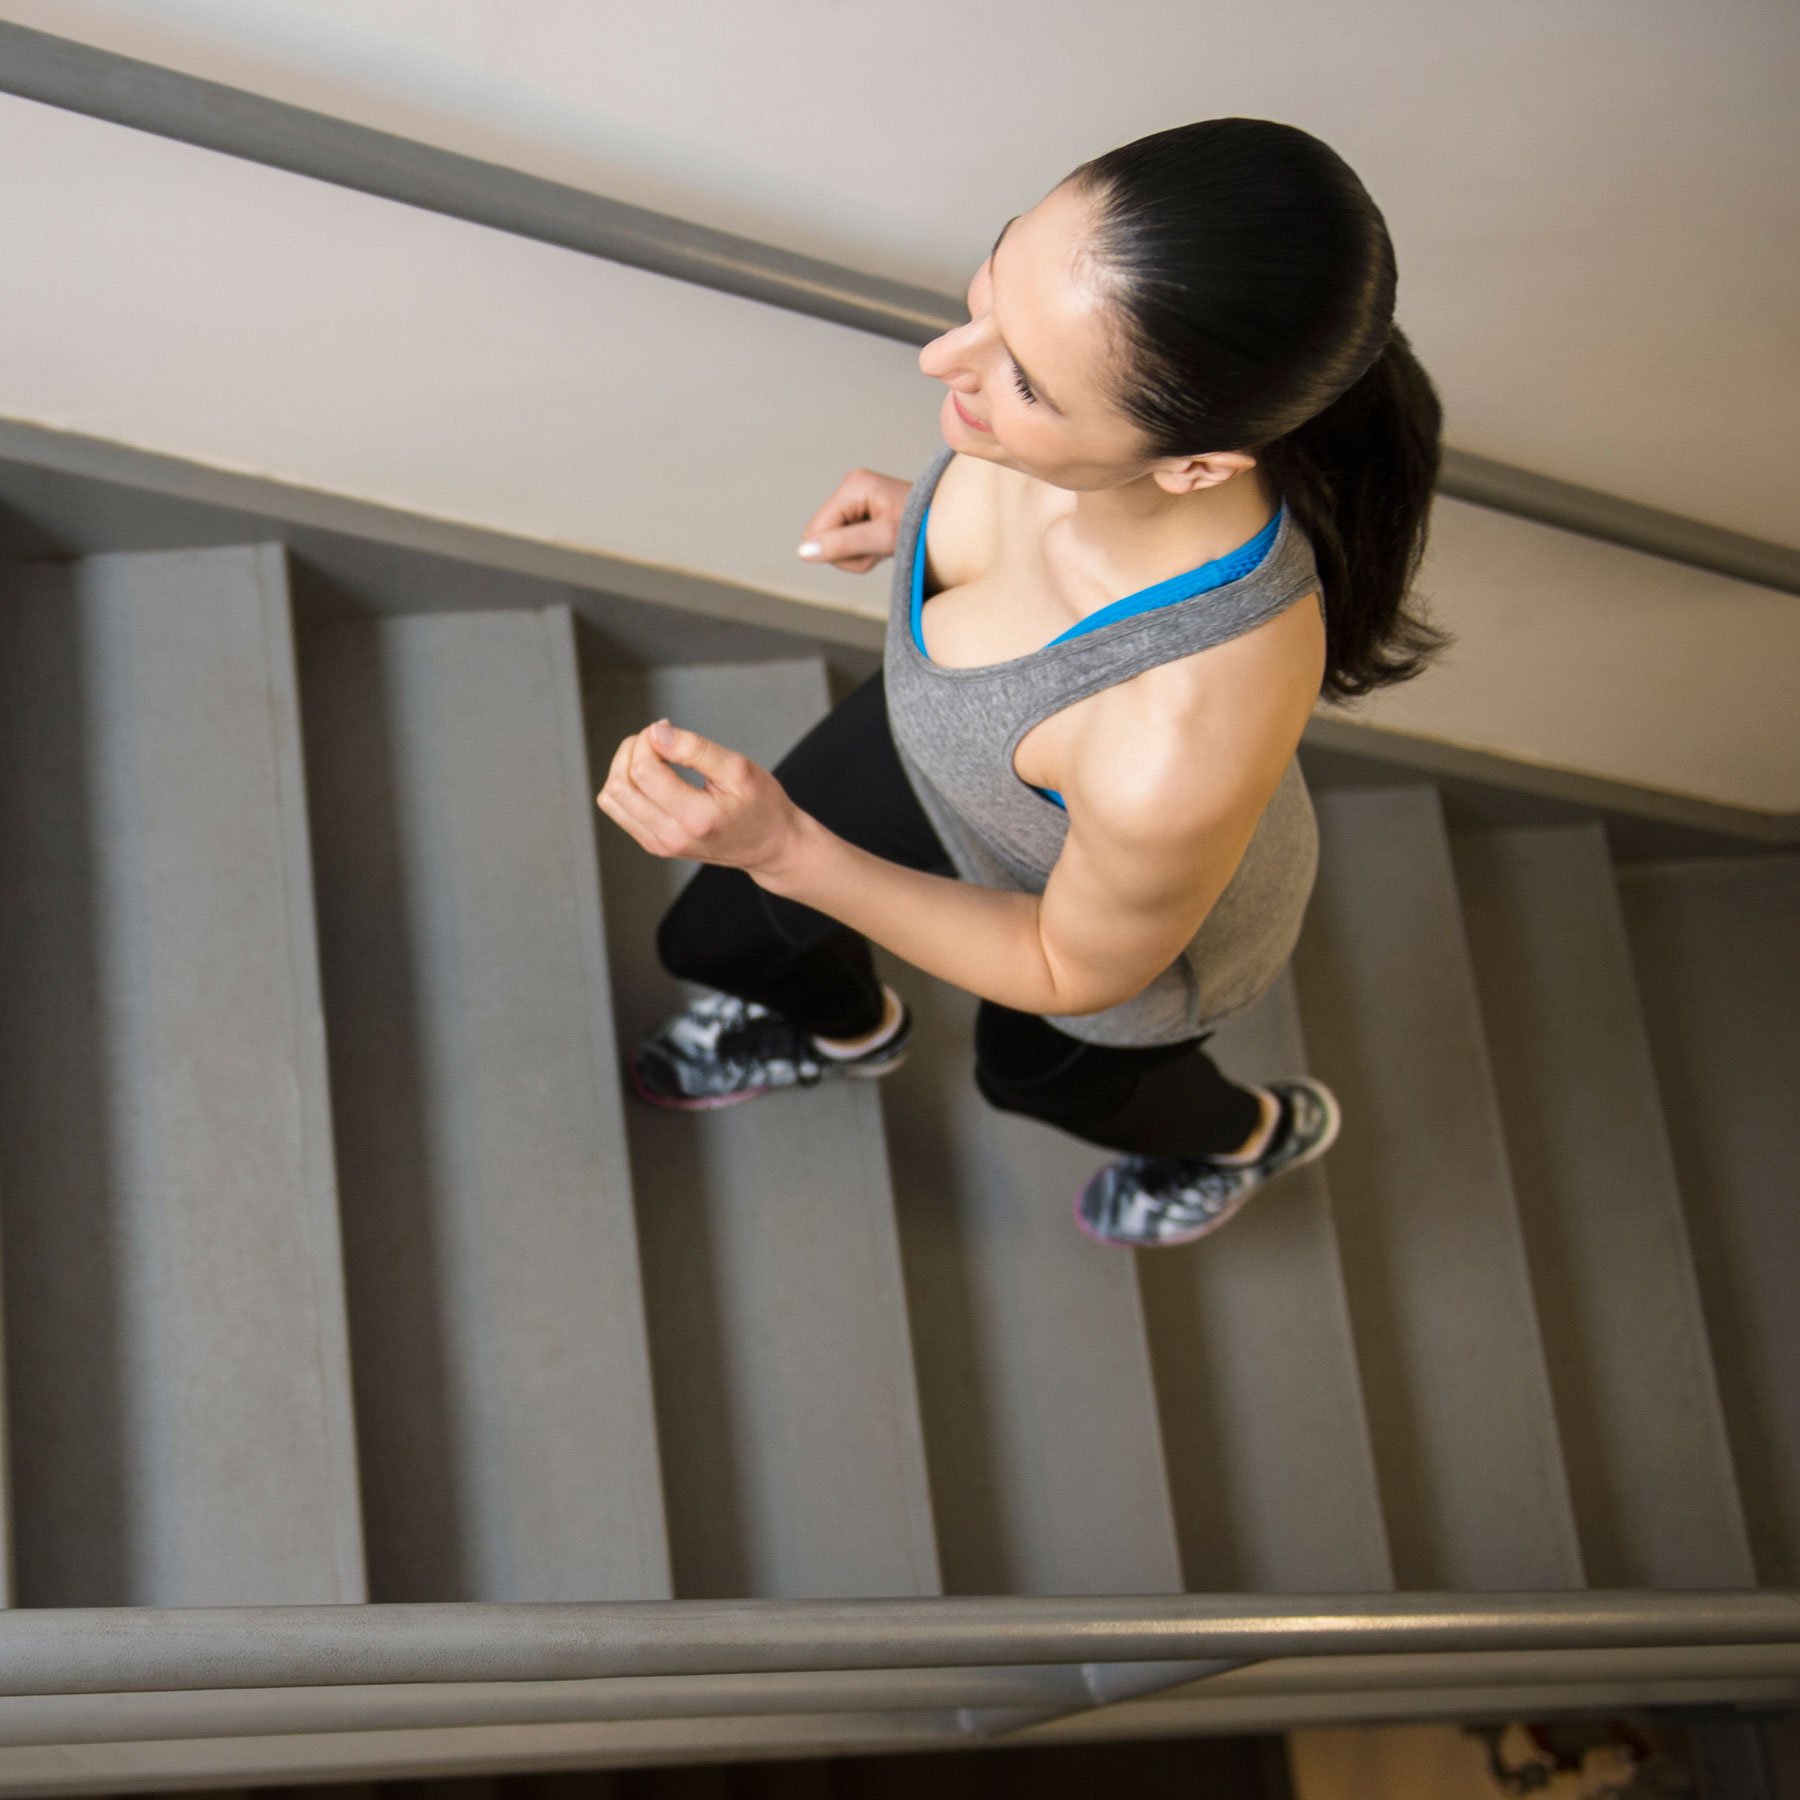 Stairs workout, stair exercises at home - trainer intro/warm-up (woman working out on stairs inside)